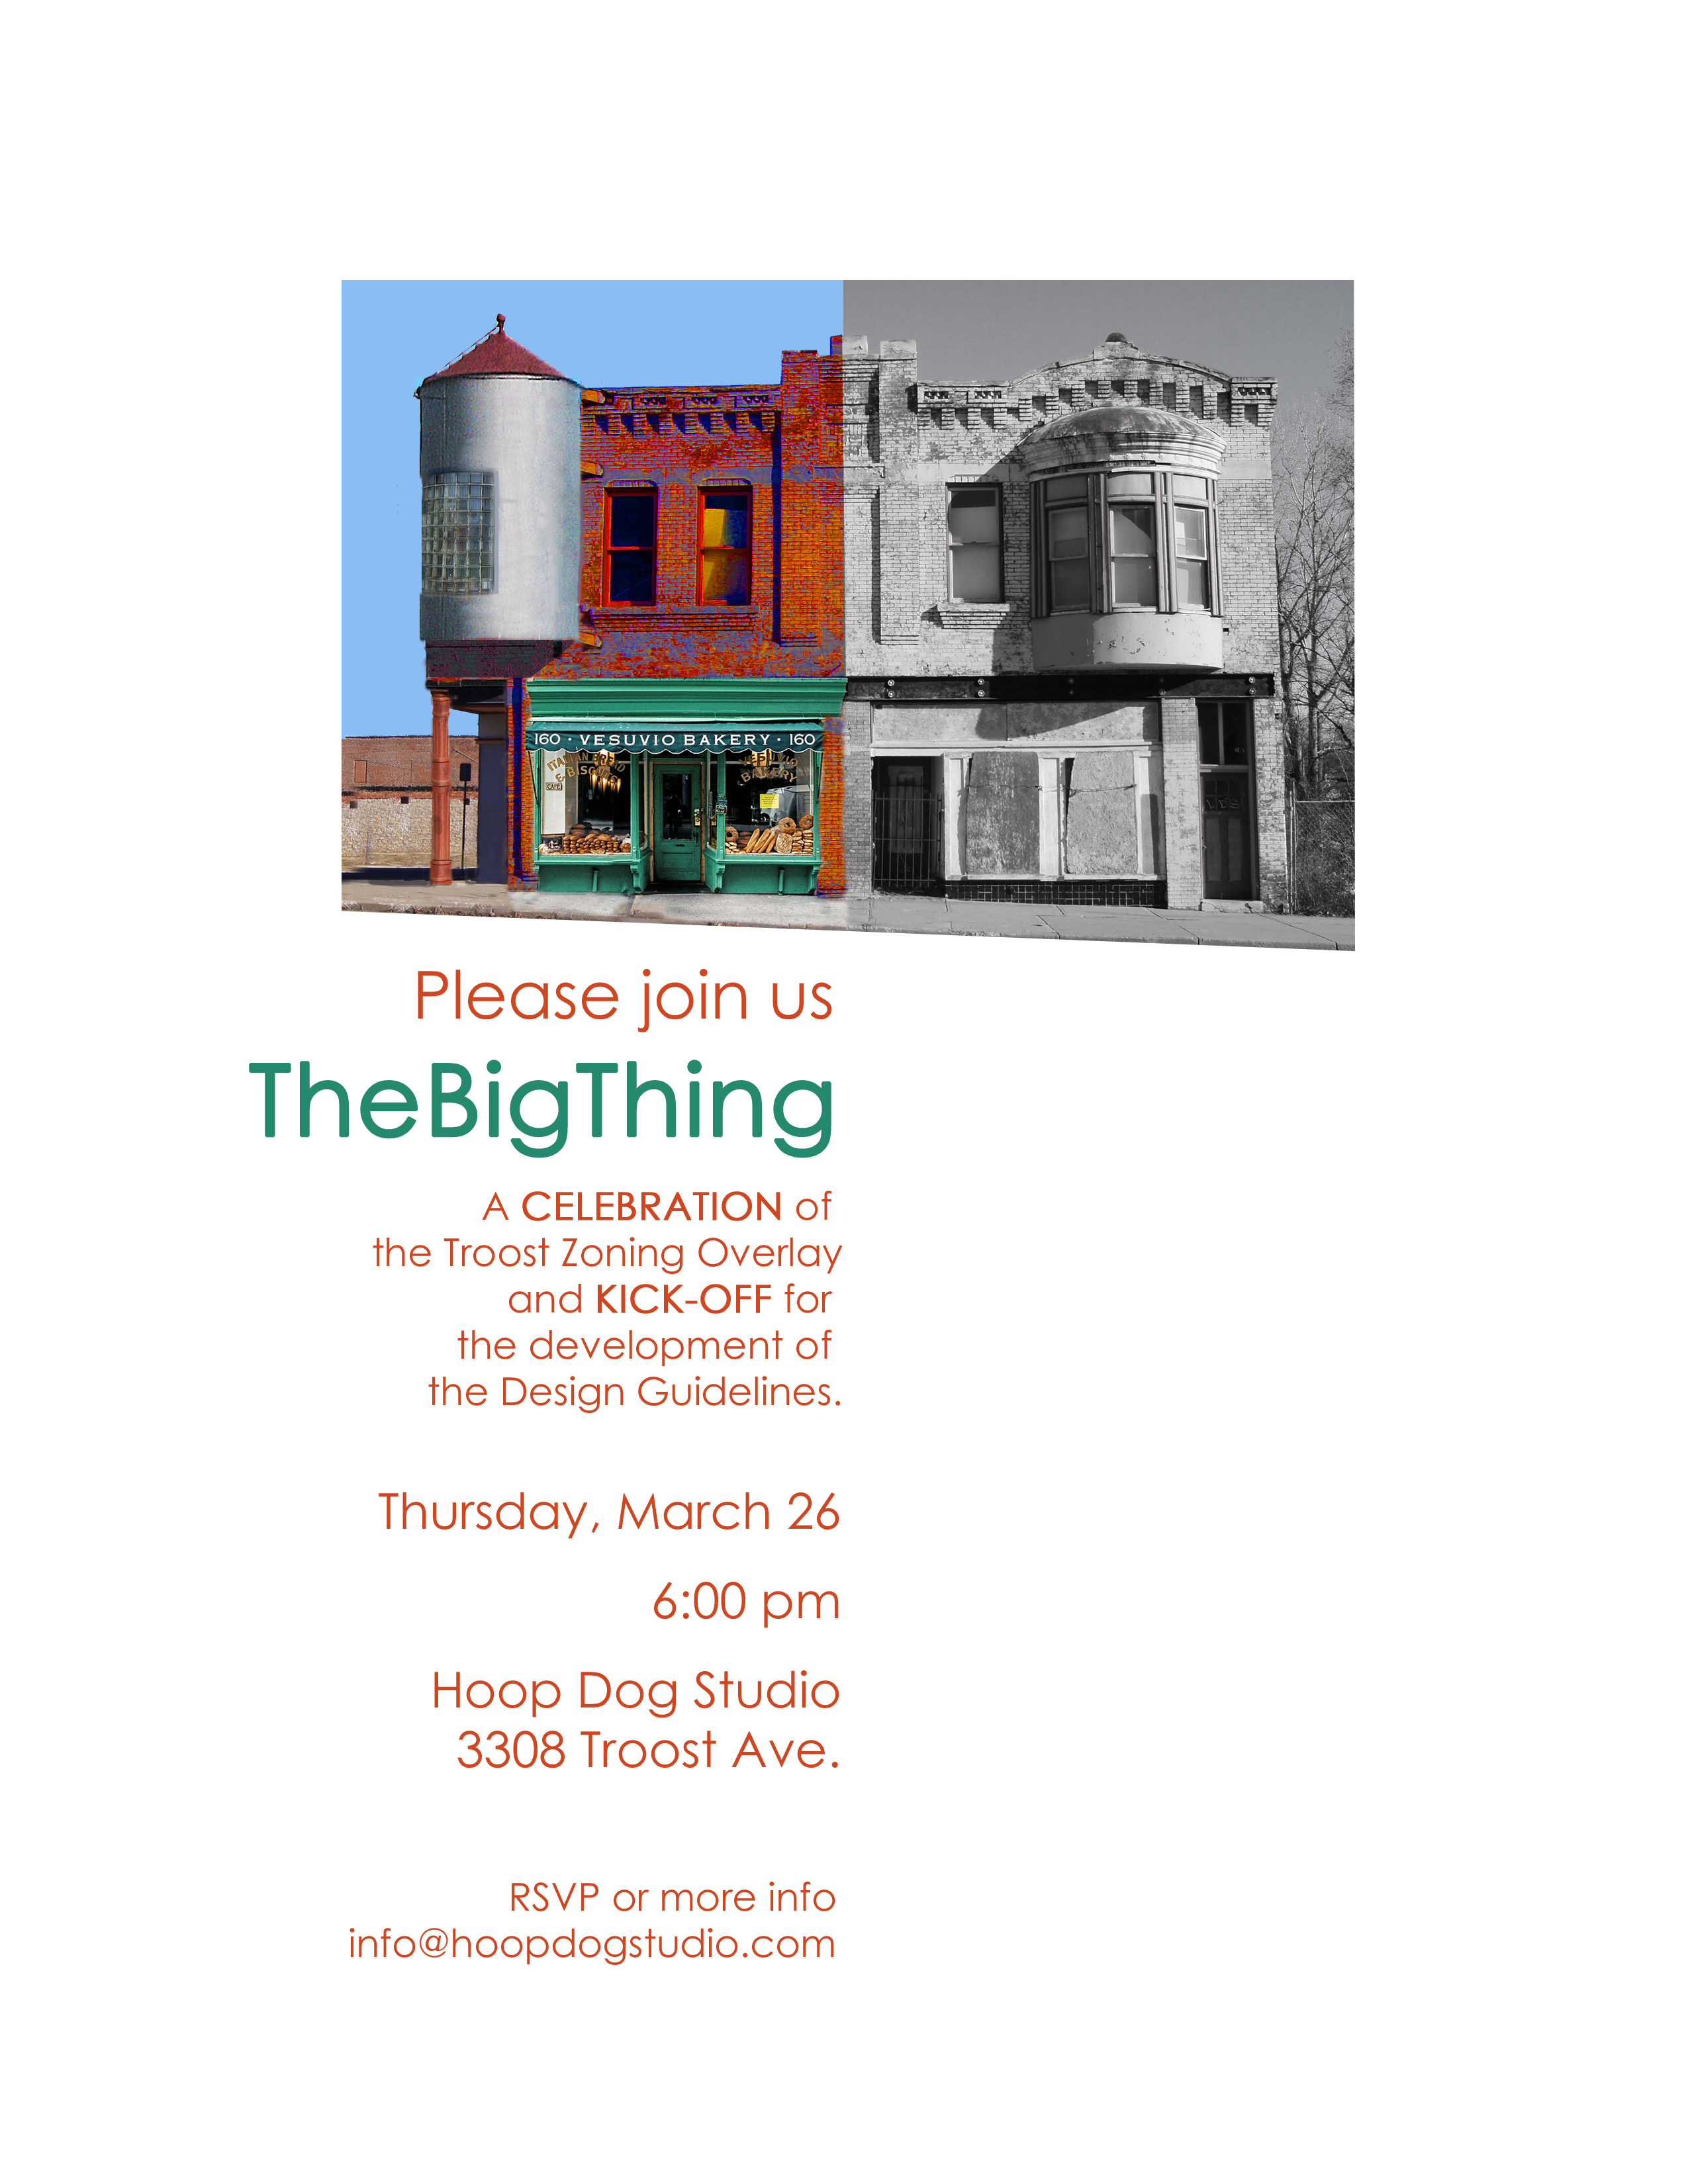 TheBigThing invite